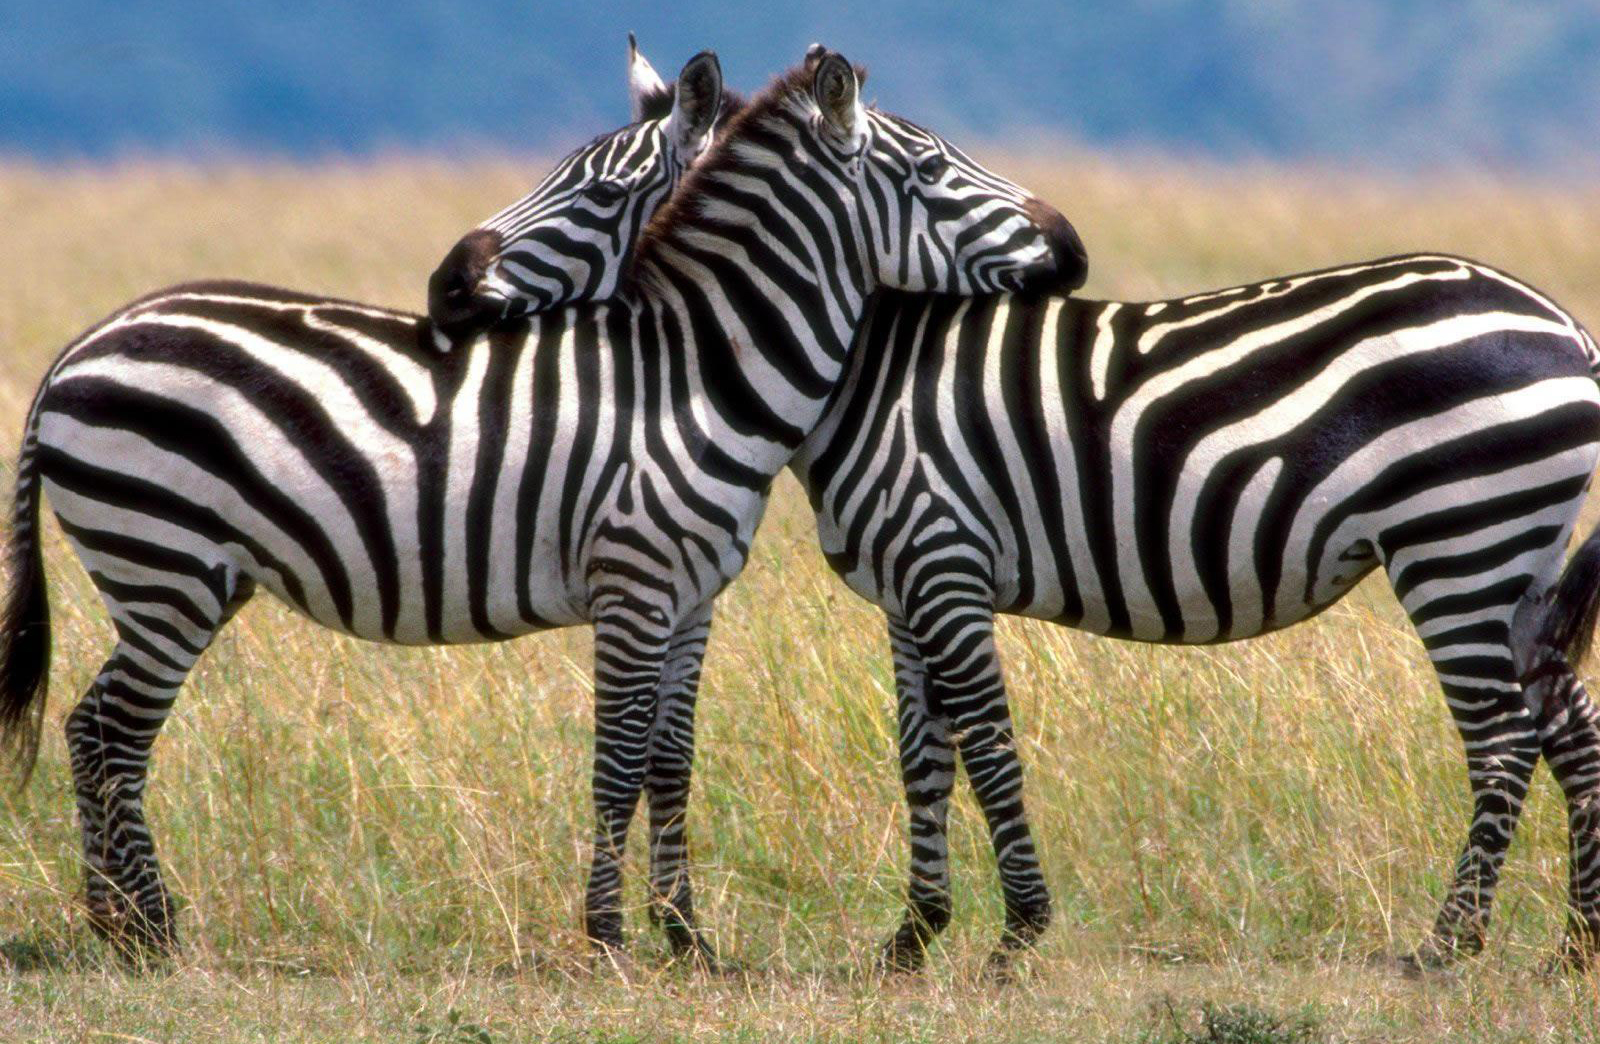 A Day Trip to Arusha National Park 1 Day(s) Day tour Experience Zanzibar Tours & Safaris Ltd